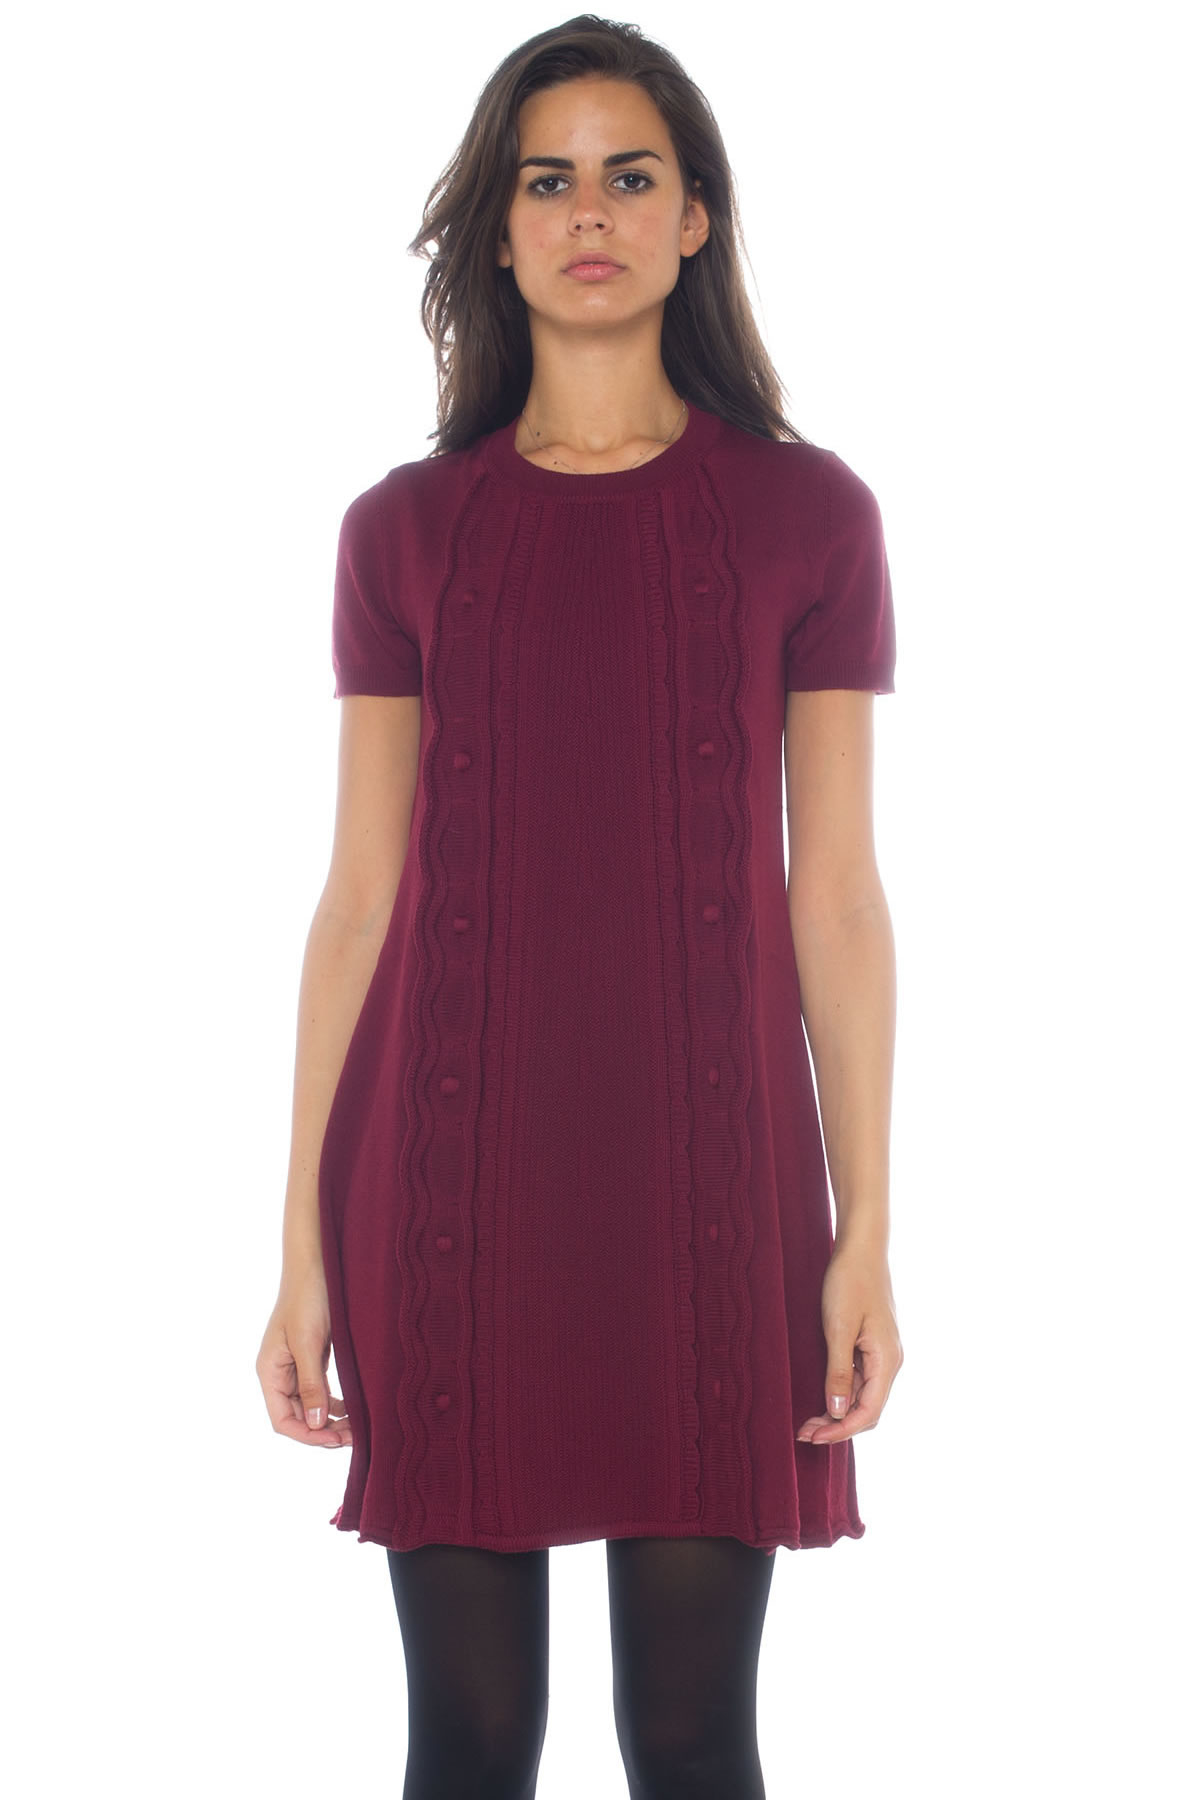 Find great deals on eBay for Outback Red in Tops and Blouses for All Women. Shop with confidence.